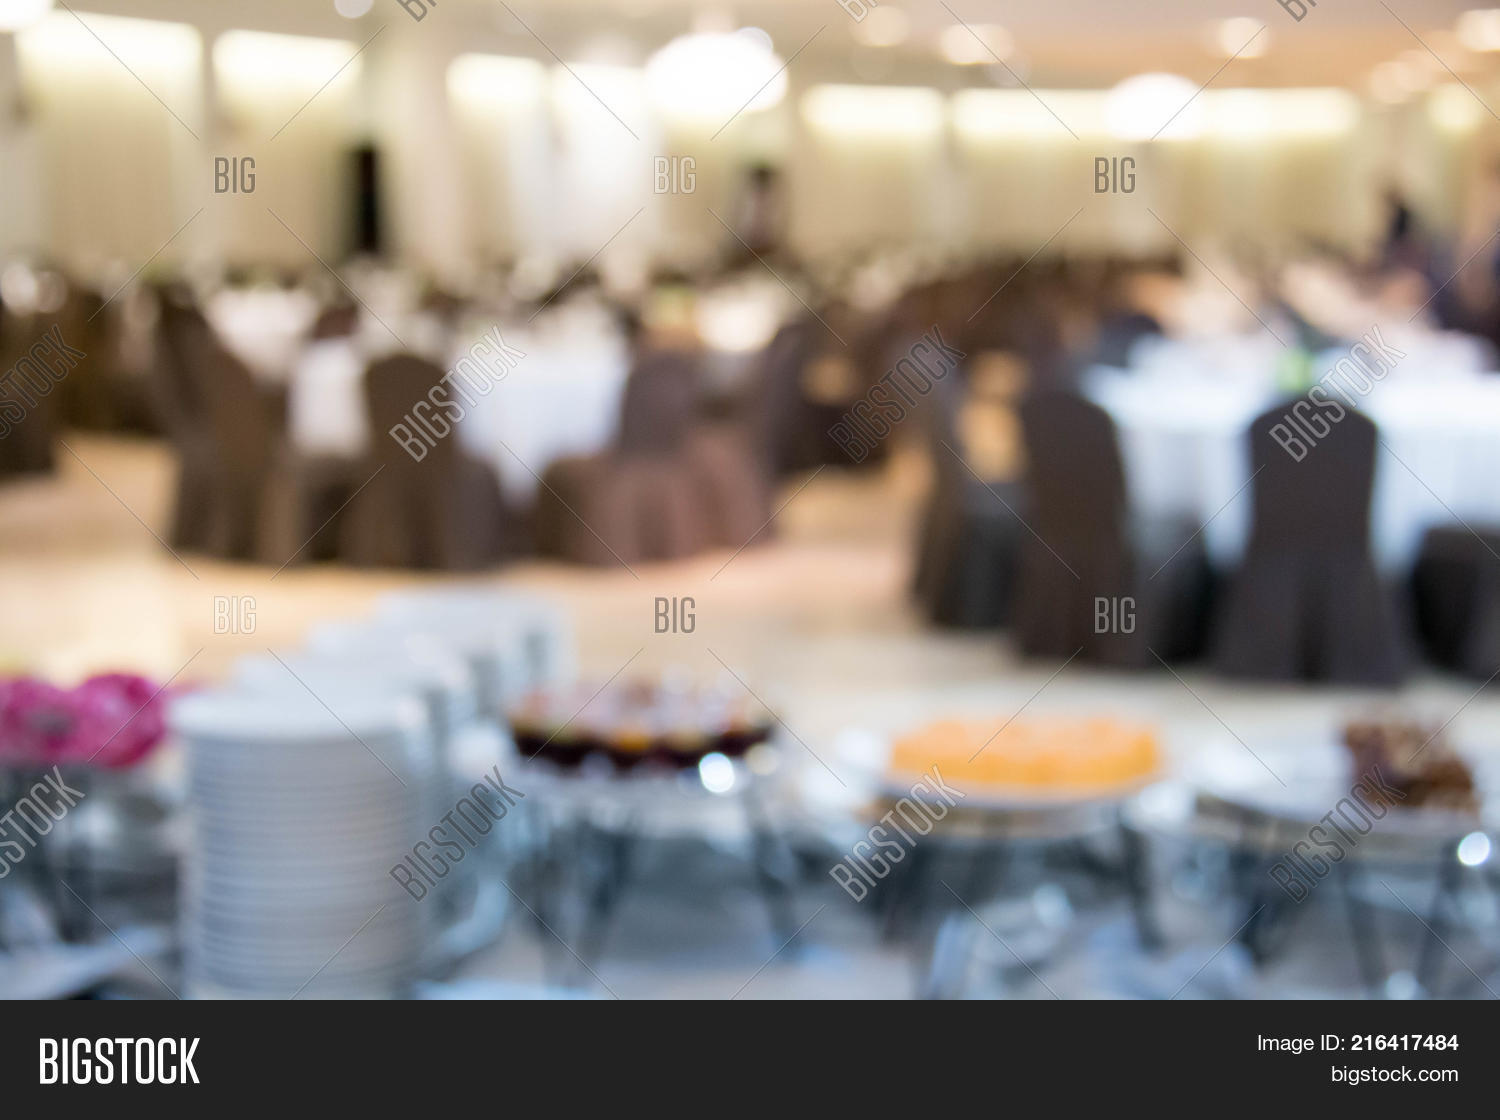 Blur Catering Setup Image Photo Free Trial Bigstock